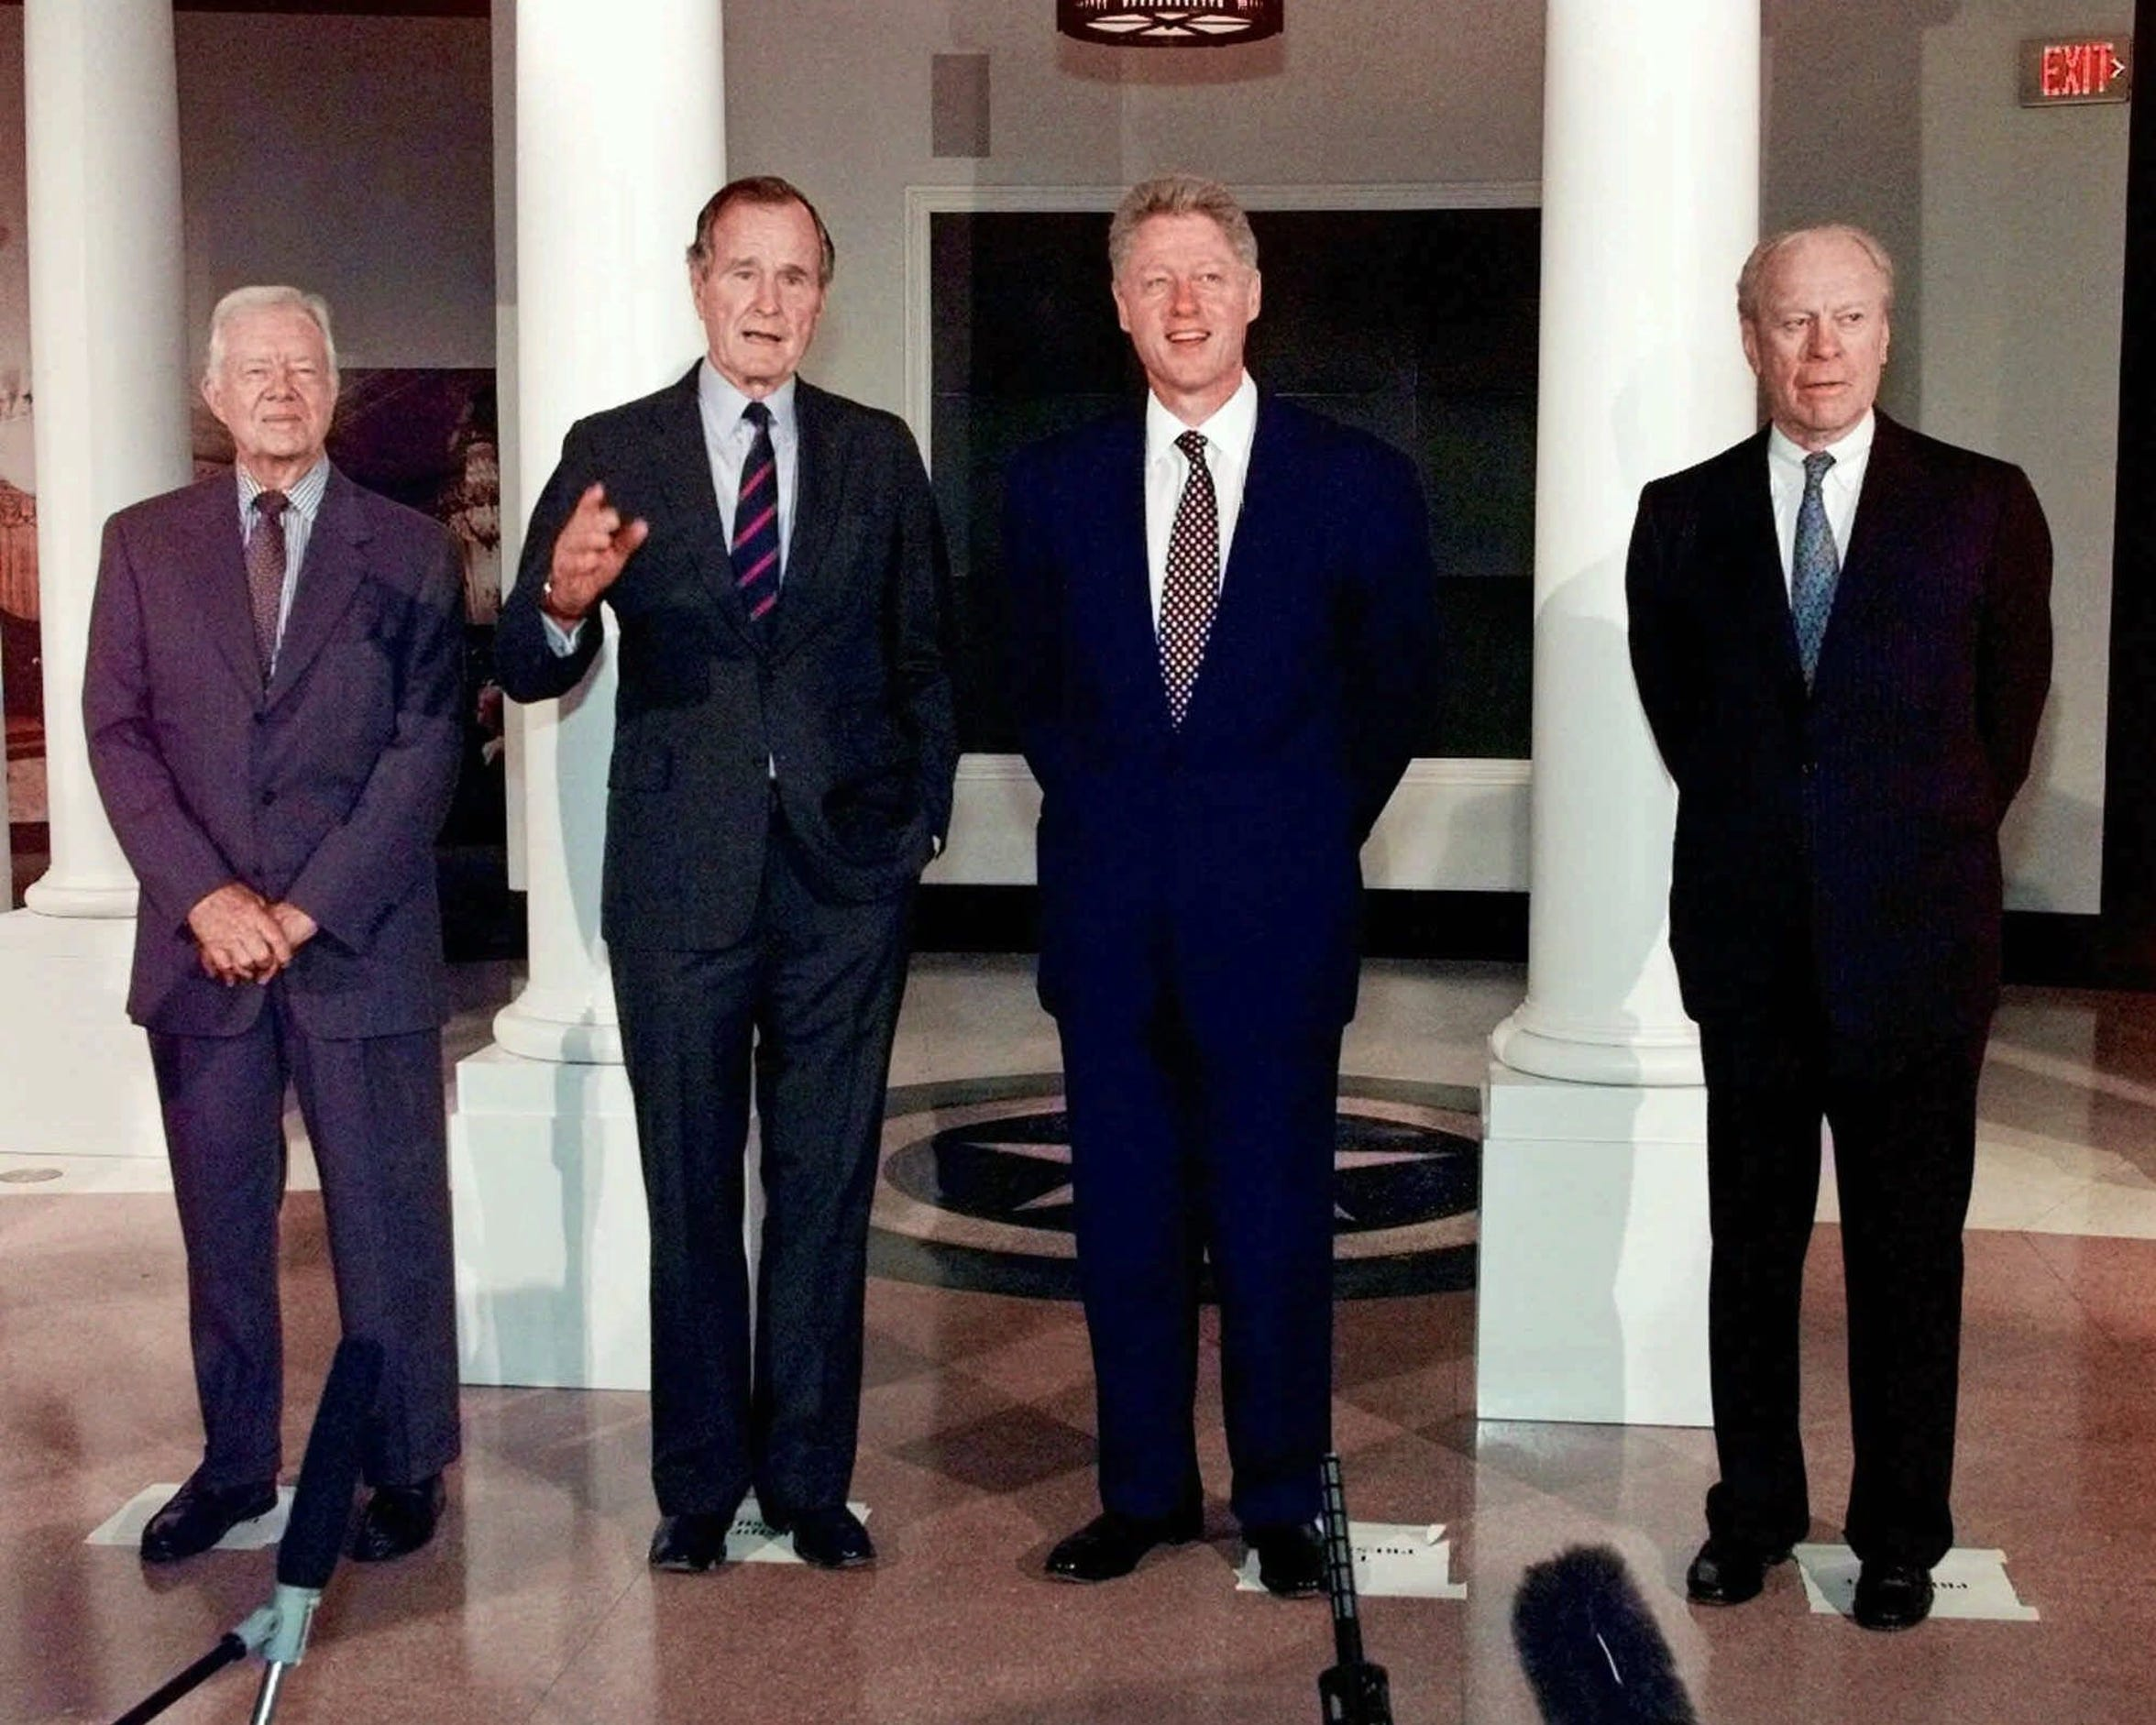 Former Presidents Jimmy Carter, George H. W. Bush and Gerald R. Ford join then President Clinton in front of exhibit at the George Bush Presidential Library in 1997.